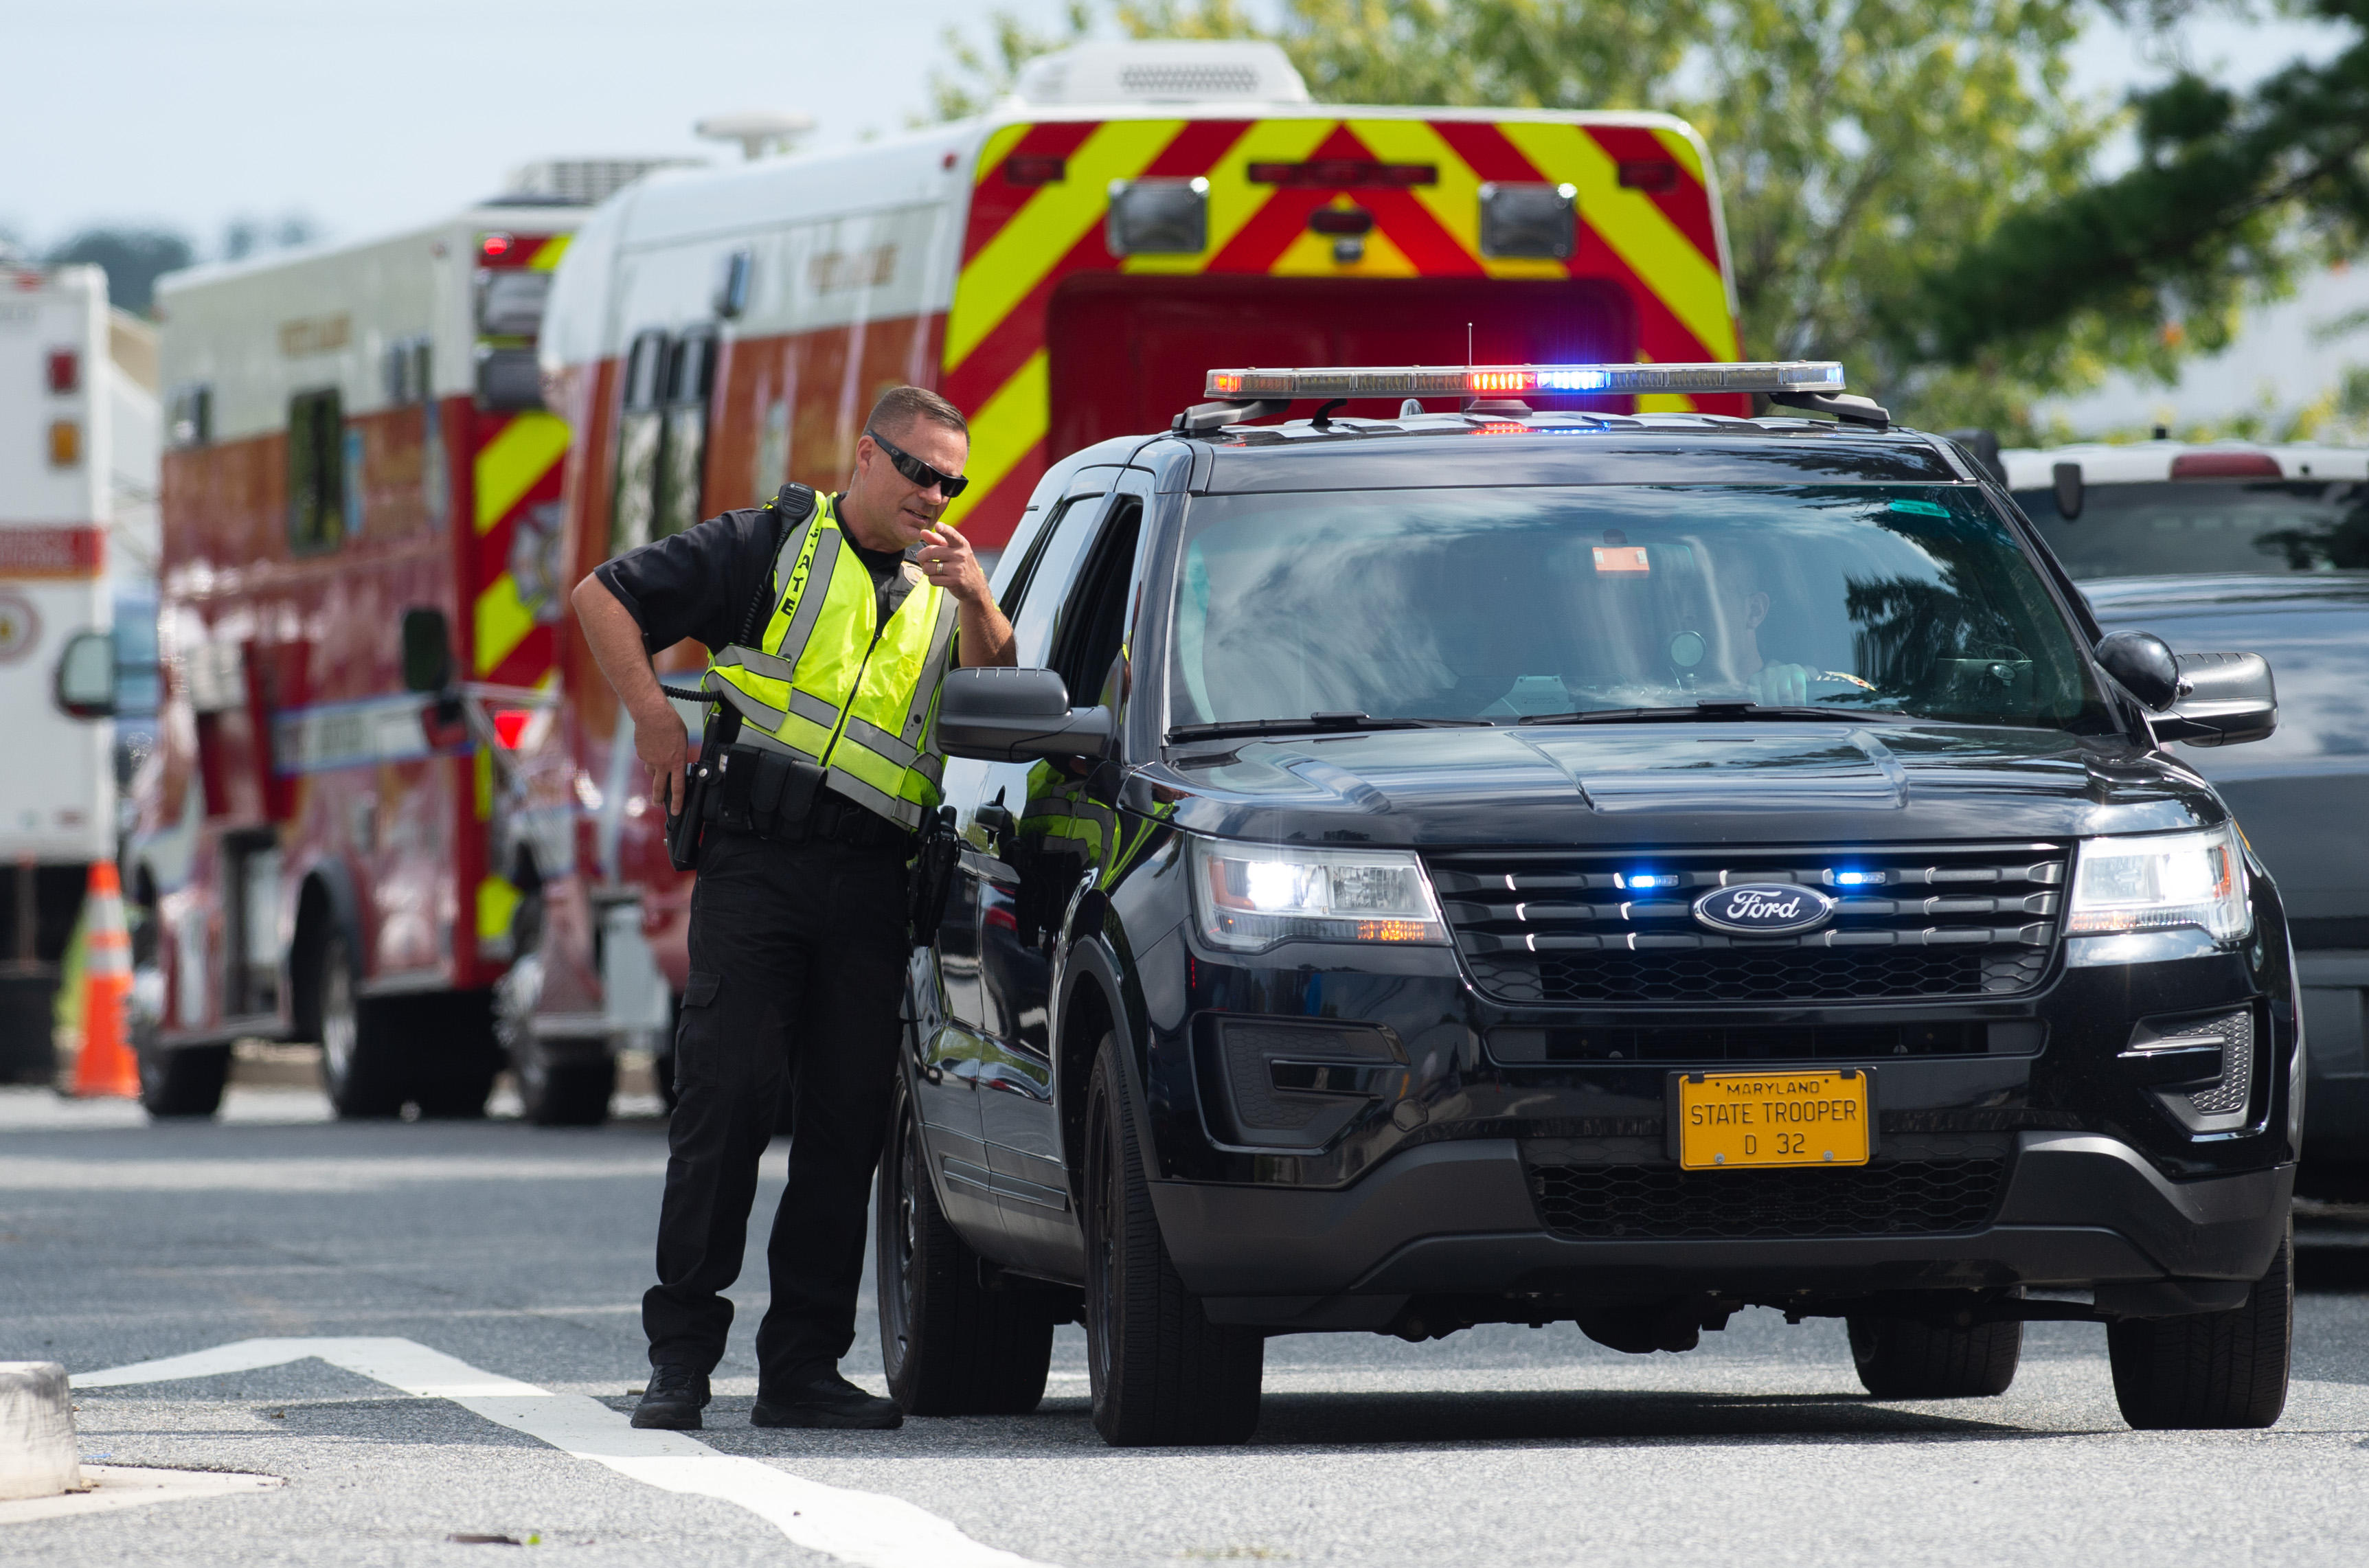 Maryland shooting today: Suspect dead, ID'd as temporary employee at